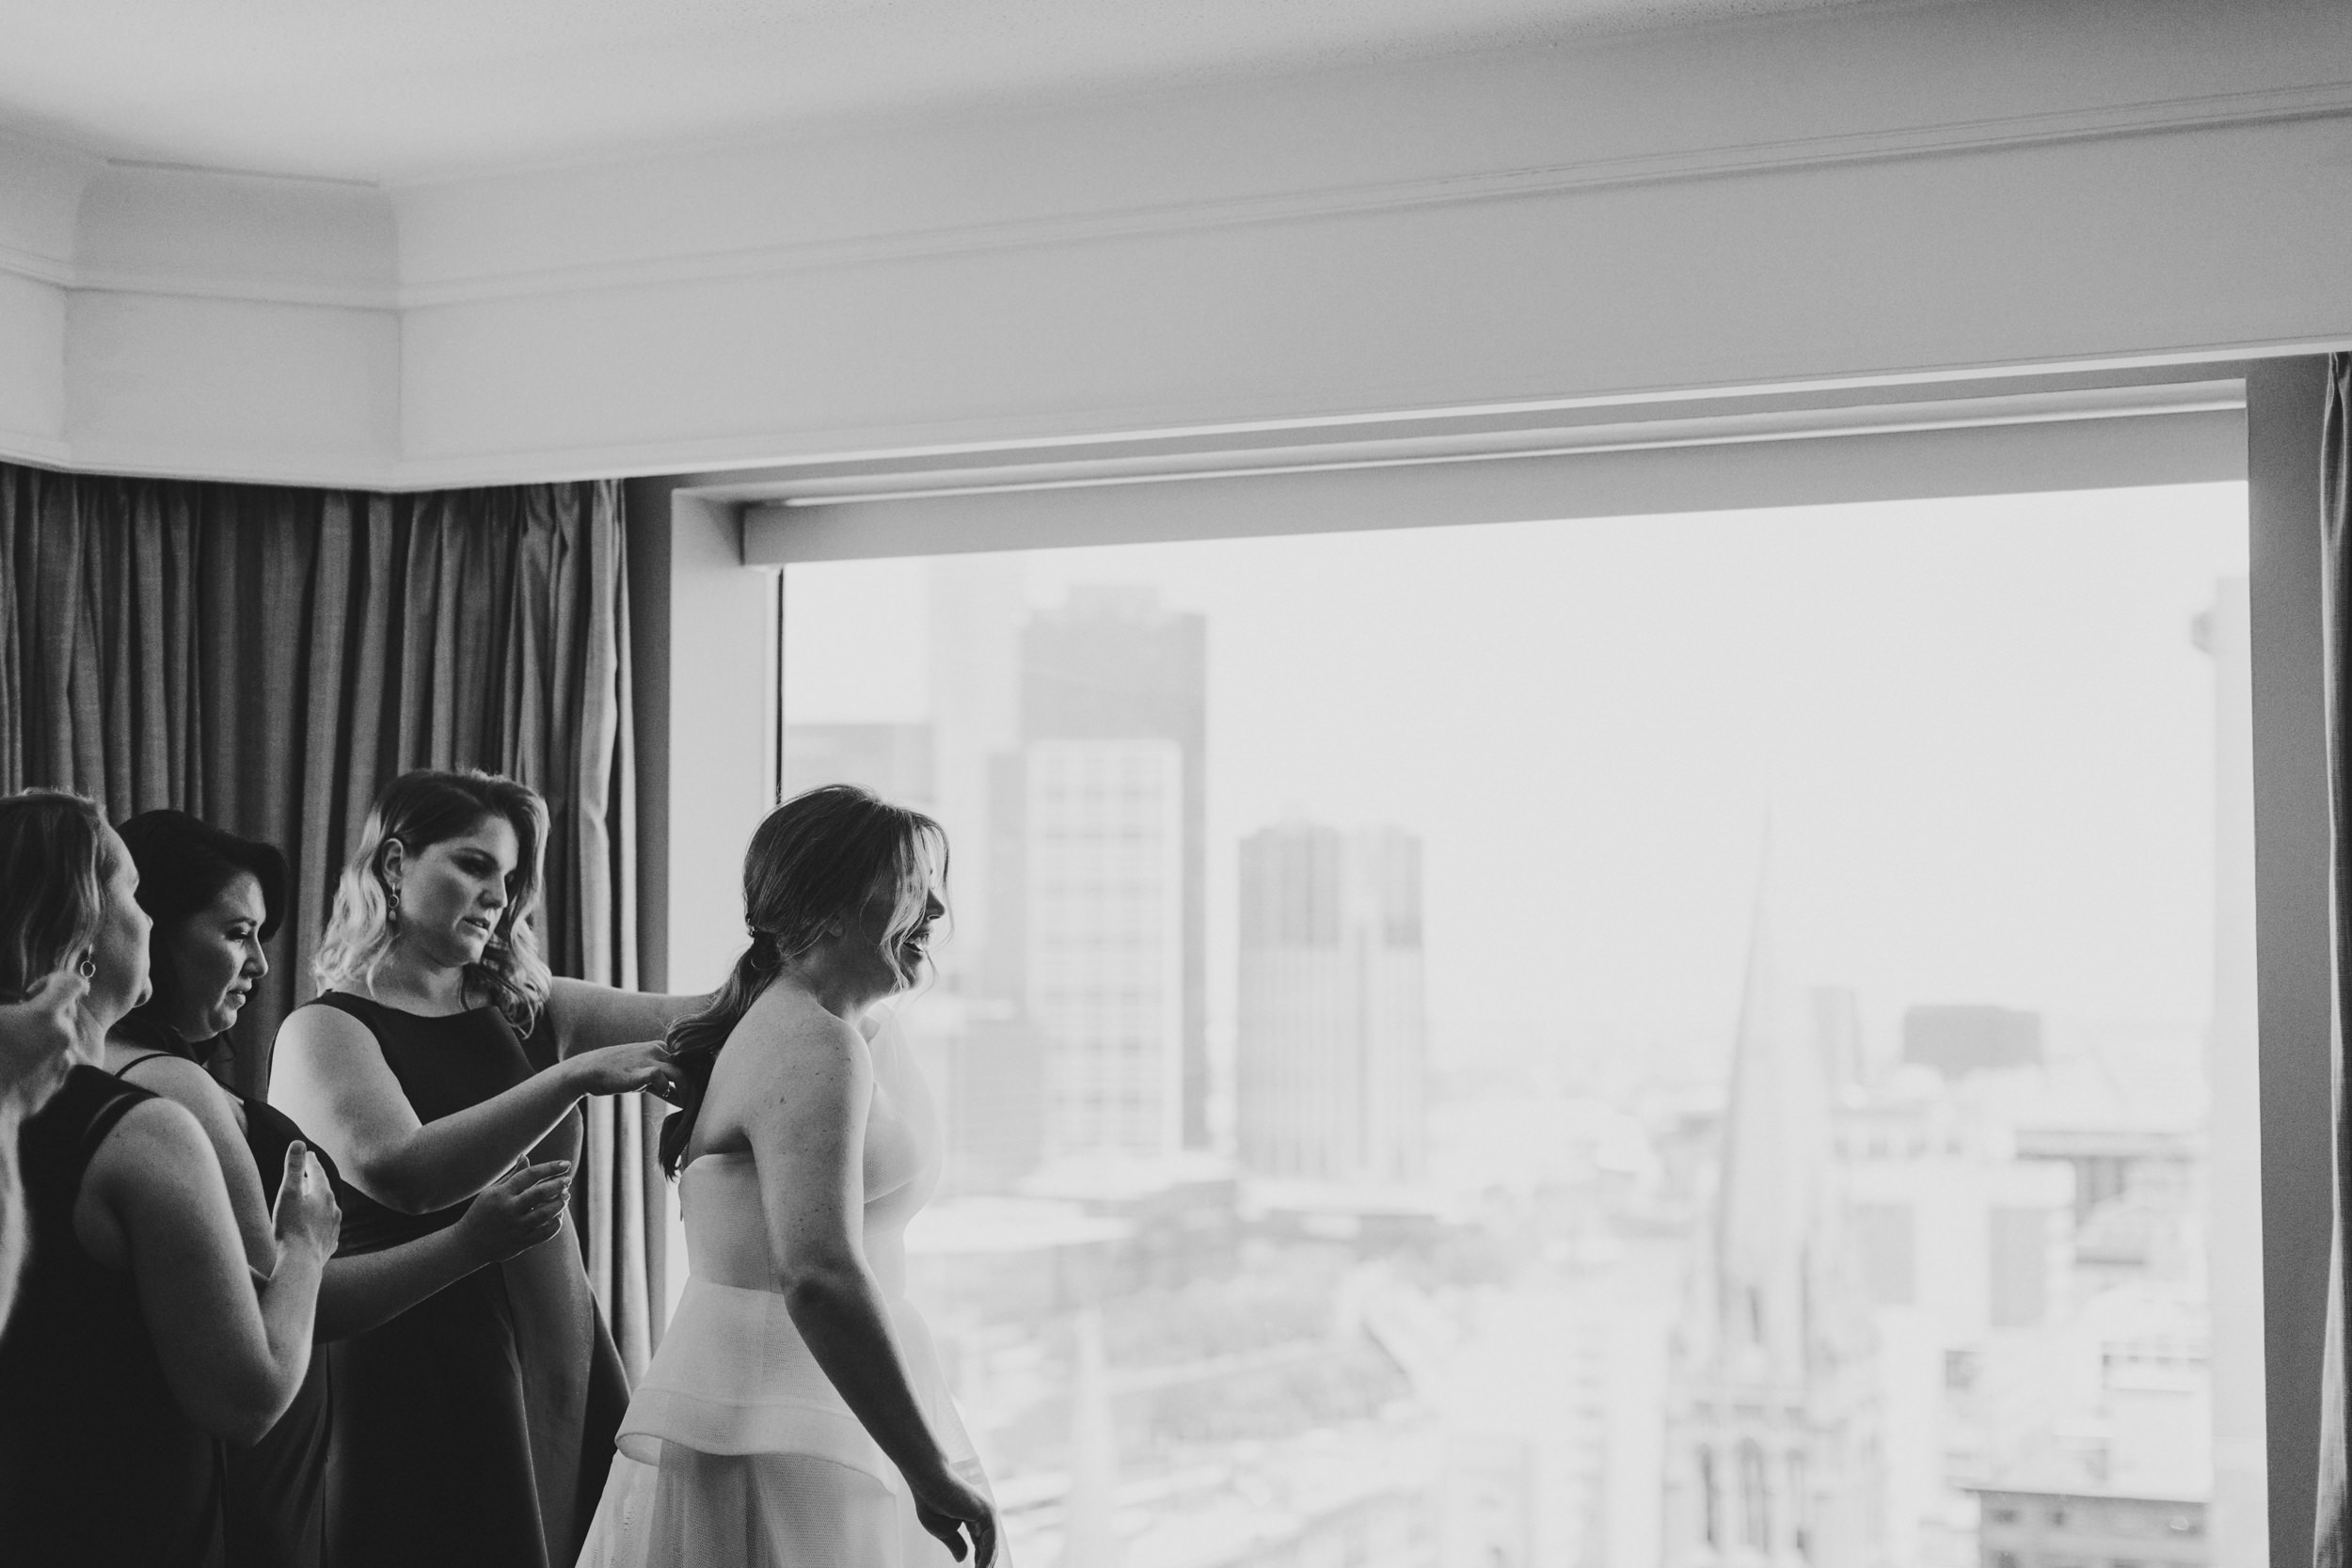 Melbourne_City_Rooftop_Wedding_Tyson_Brigette014.JPG